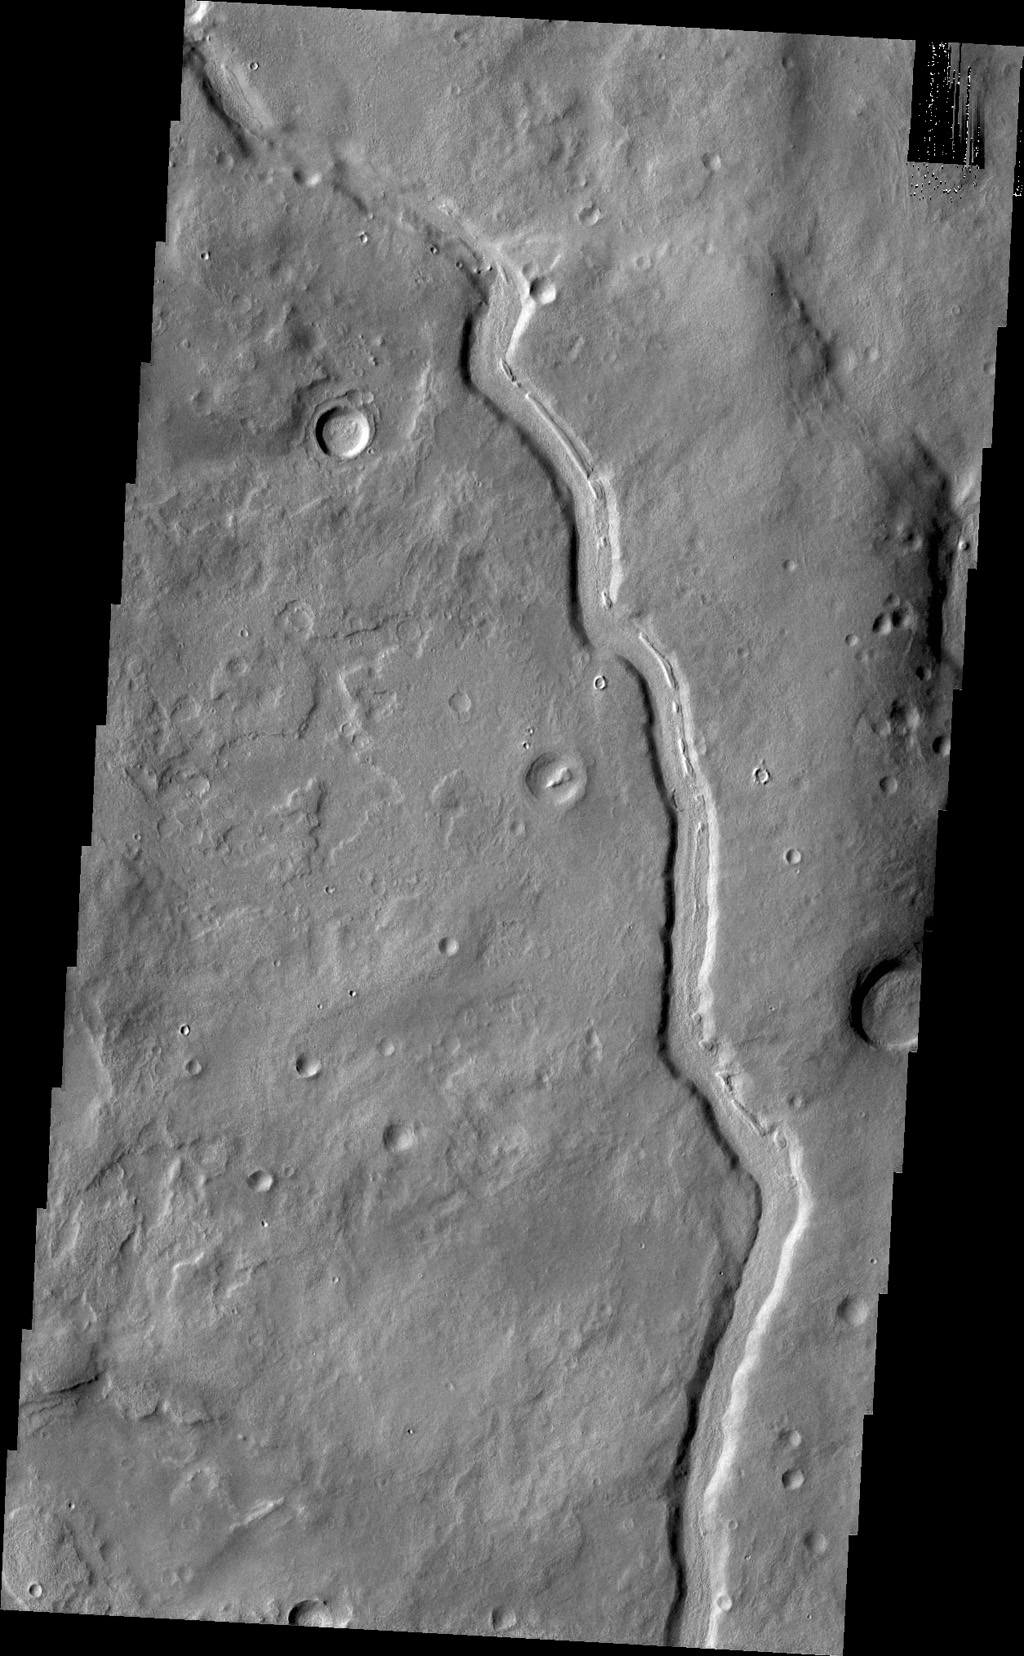 The unnamed channel in this image captured by NASA's 2001 Mars Odyssey spacecraft is located in Terra Sabaea.